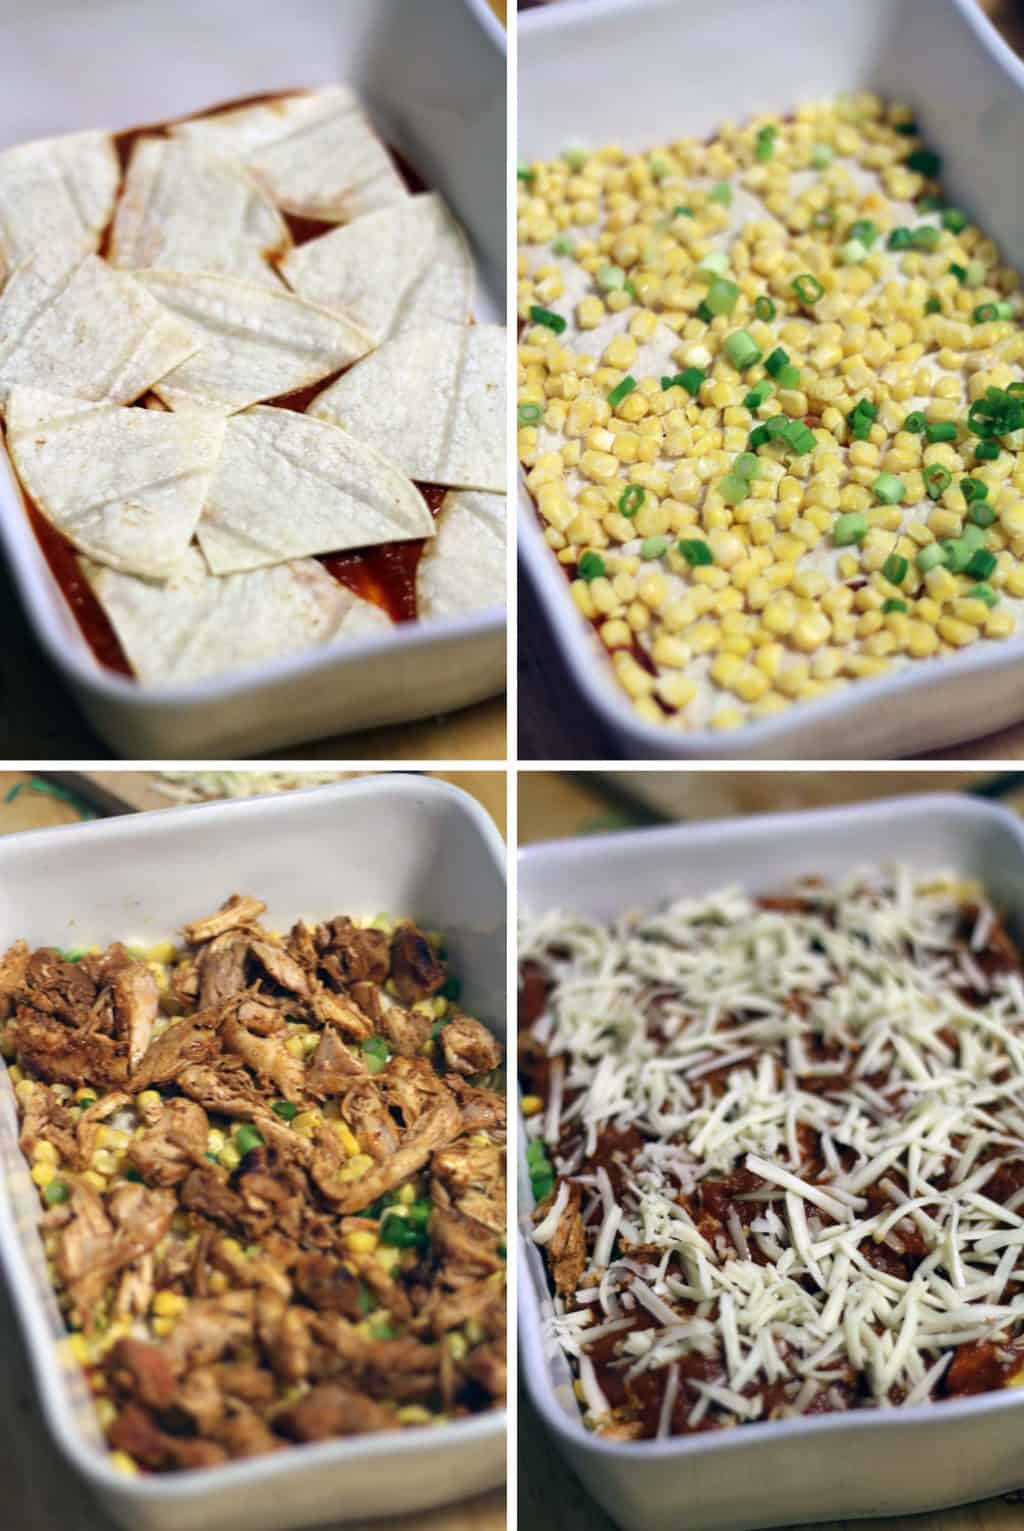 With only 6 ingredients, this chicken and corn enchilada casserole is simple, delicious, and easy to make on busy weeknights!